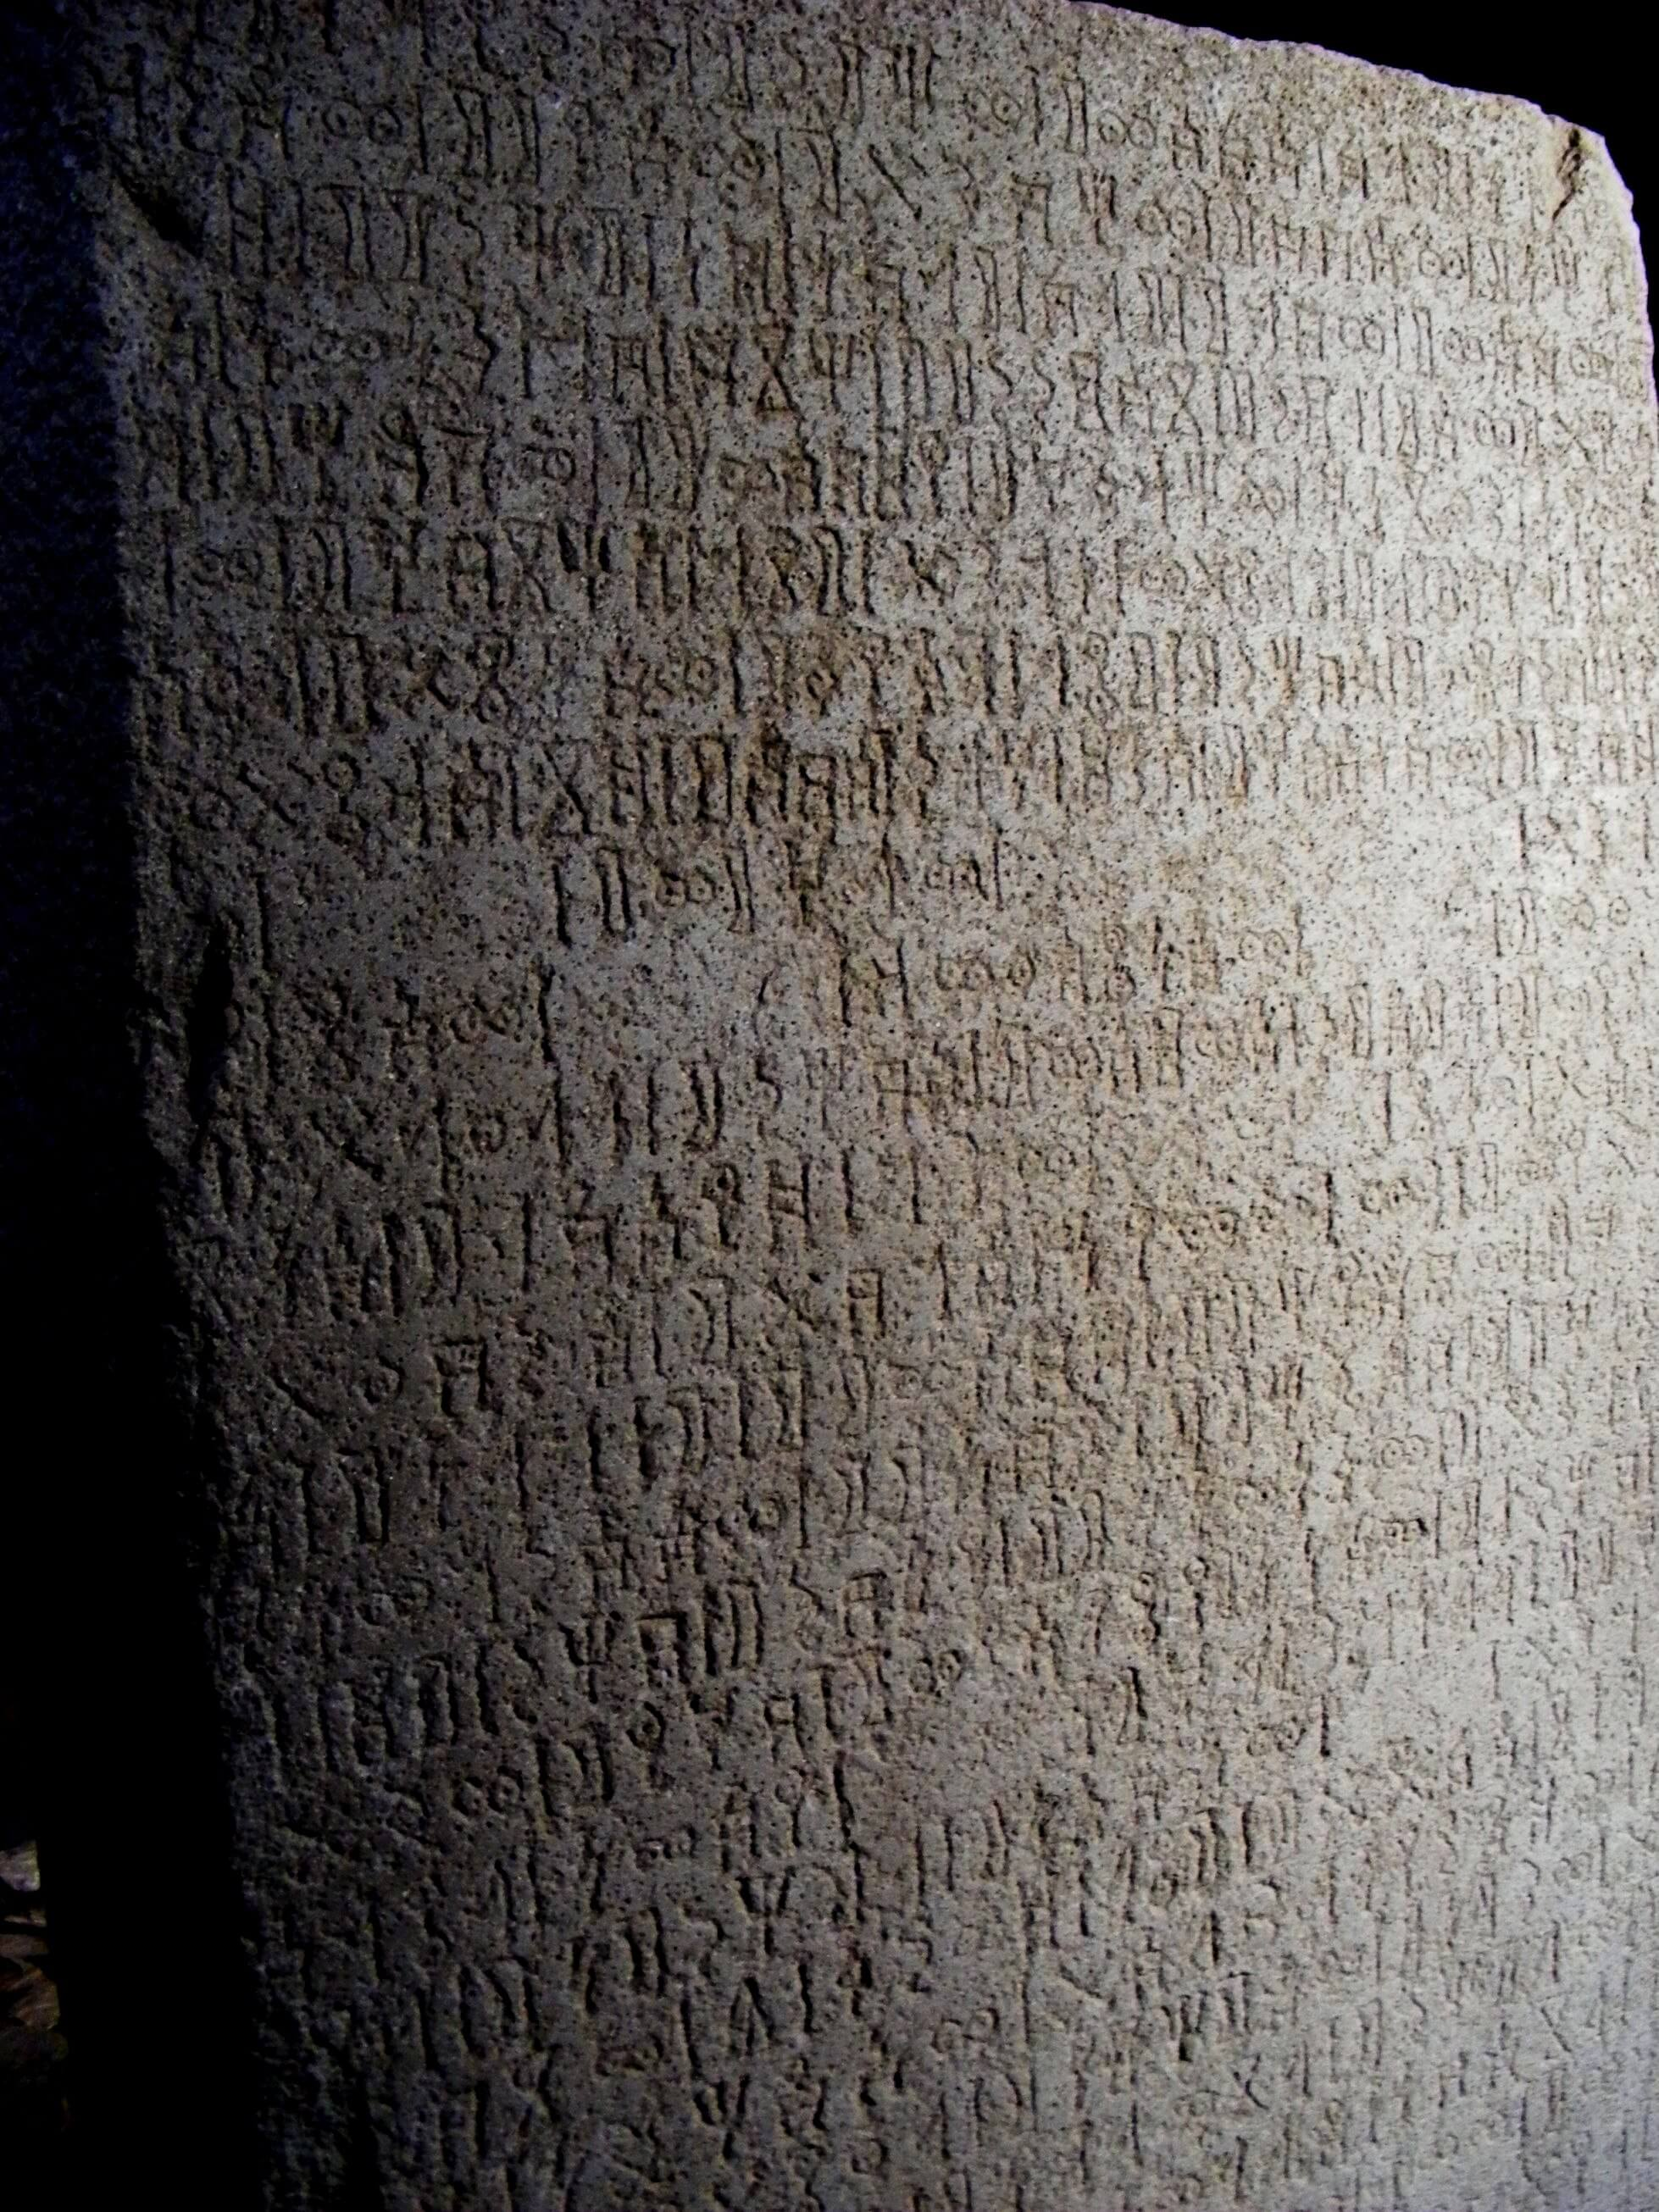 Ethiopia - Ezana stone Inscription